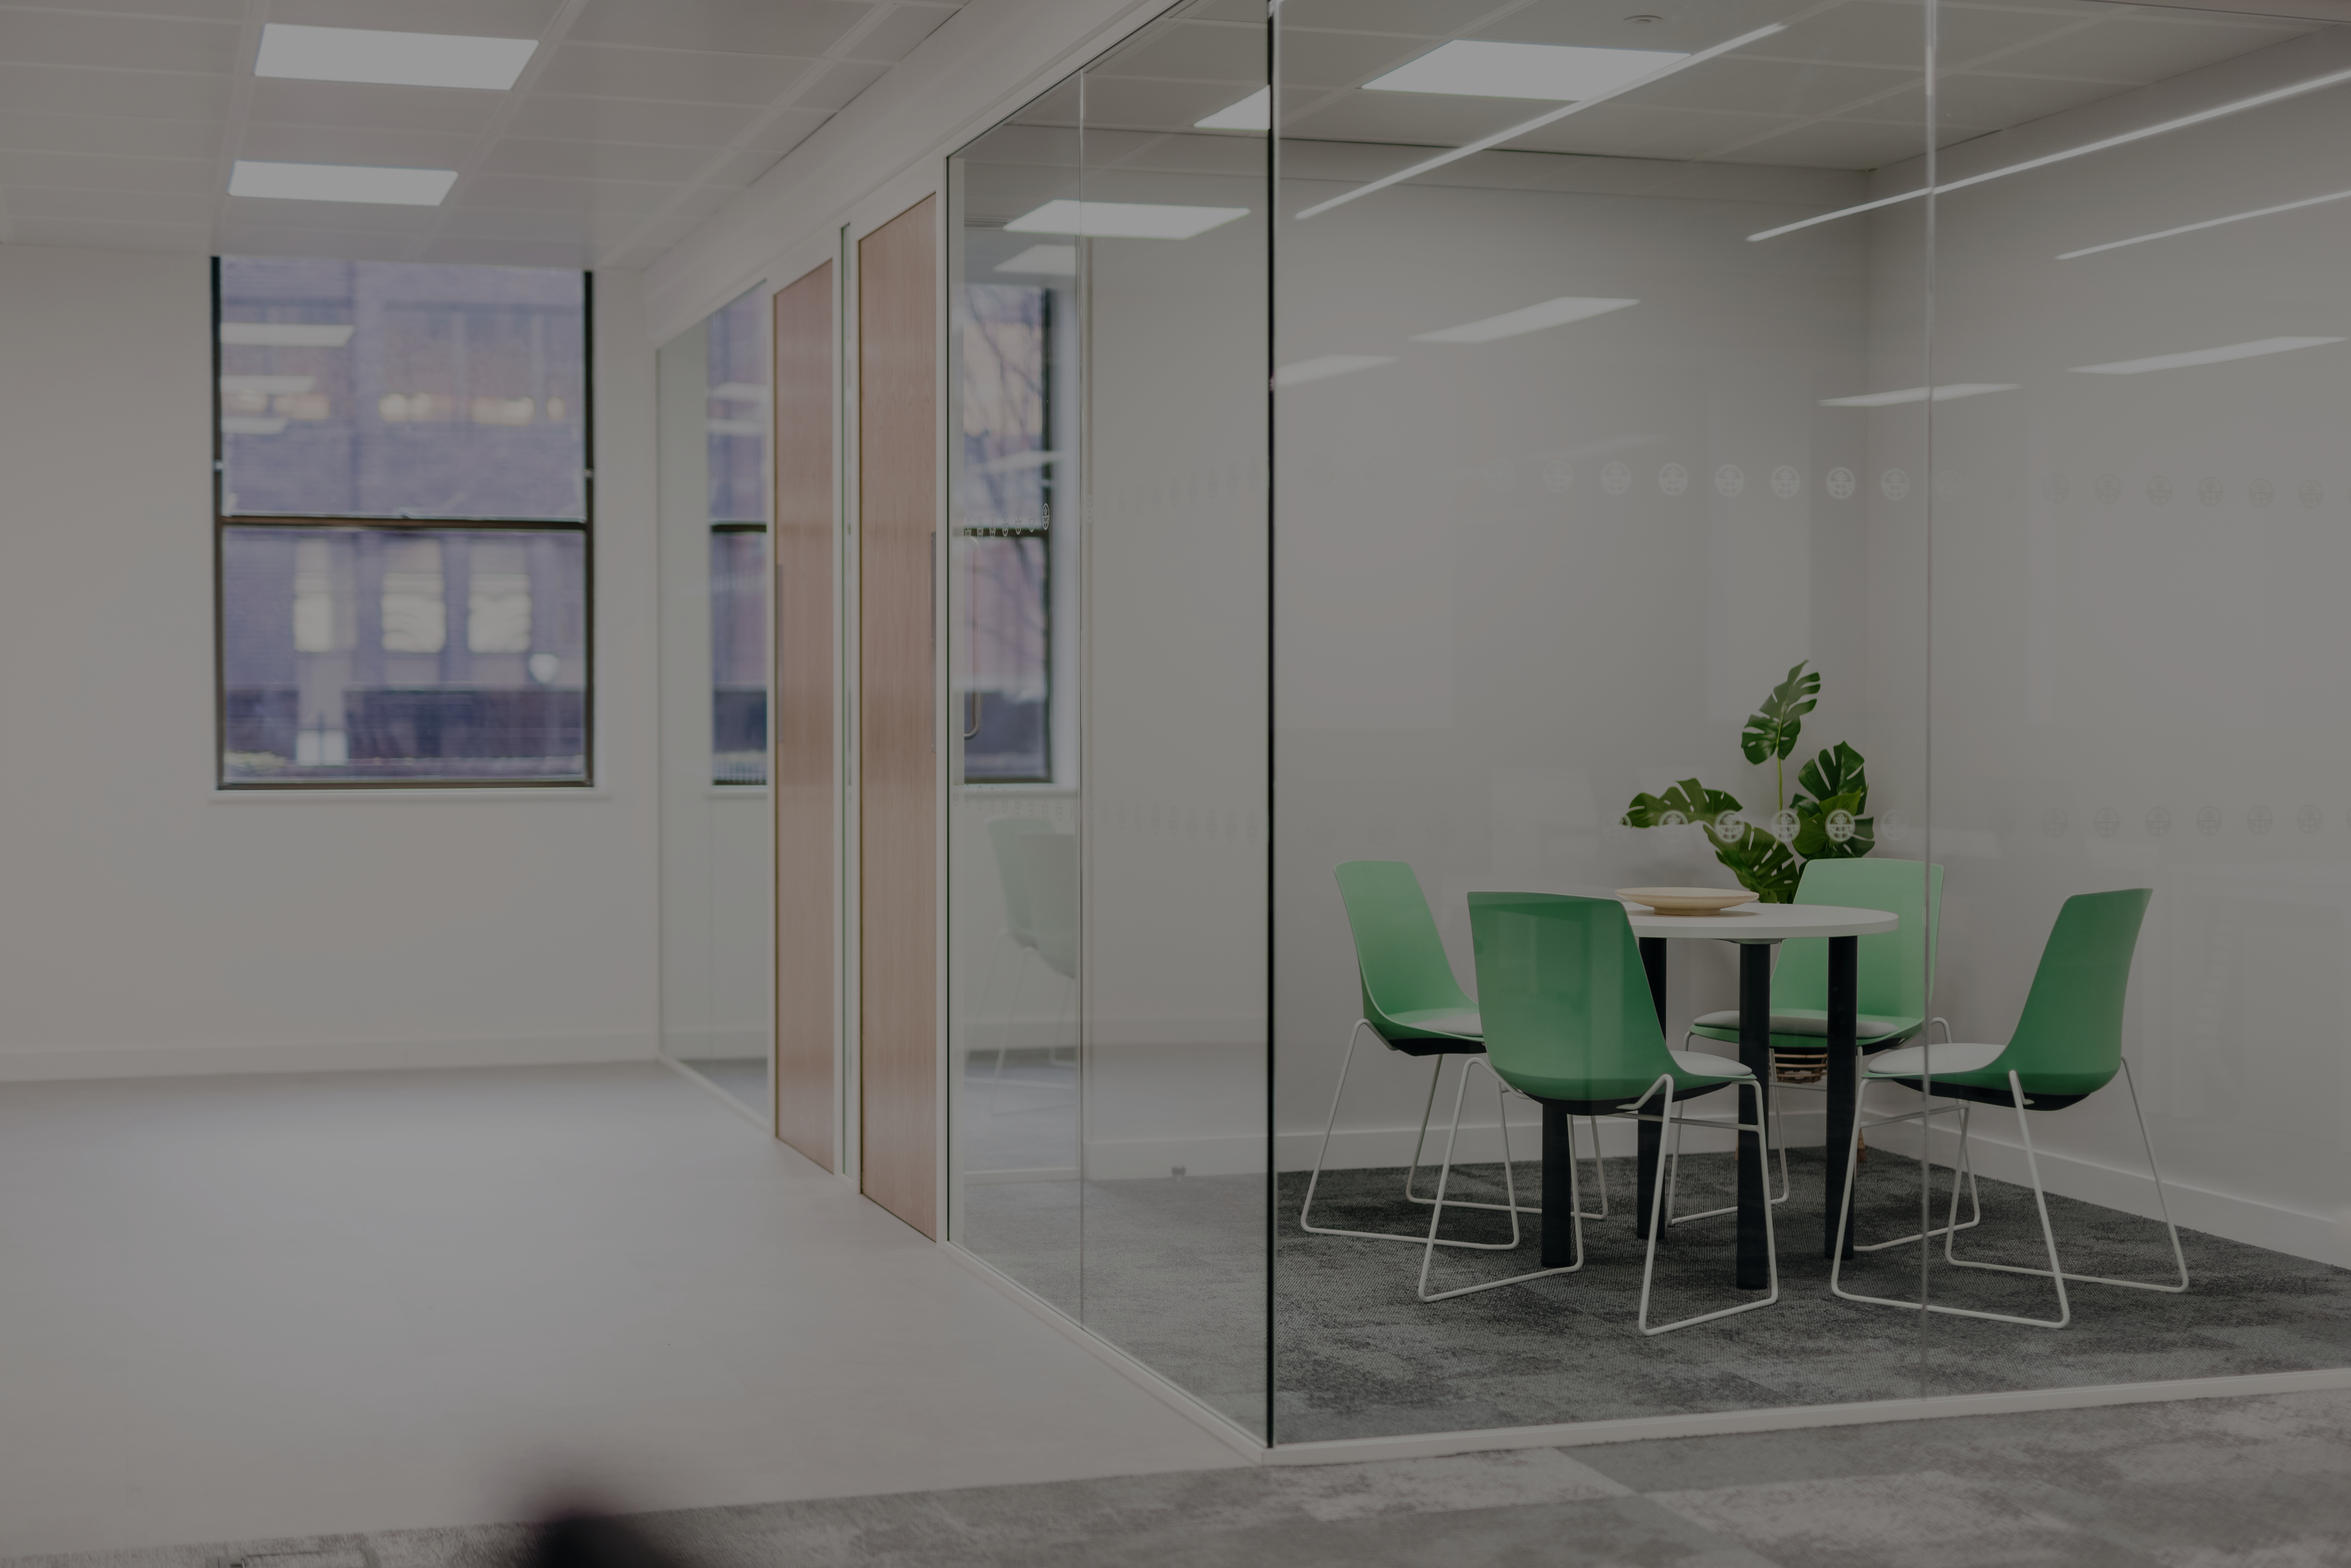 Planet-U's new office space totally transformed in just six weeks